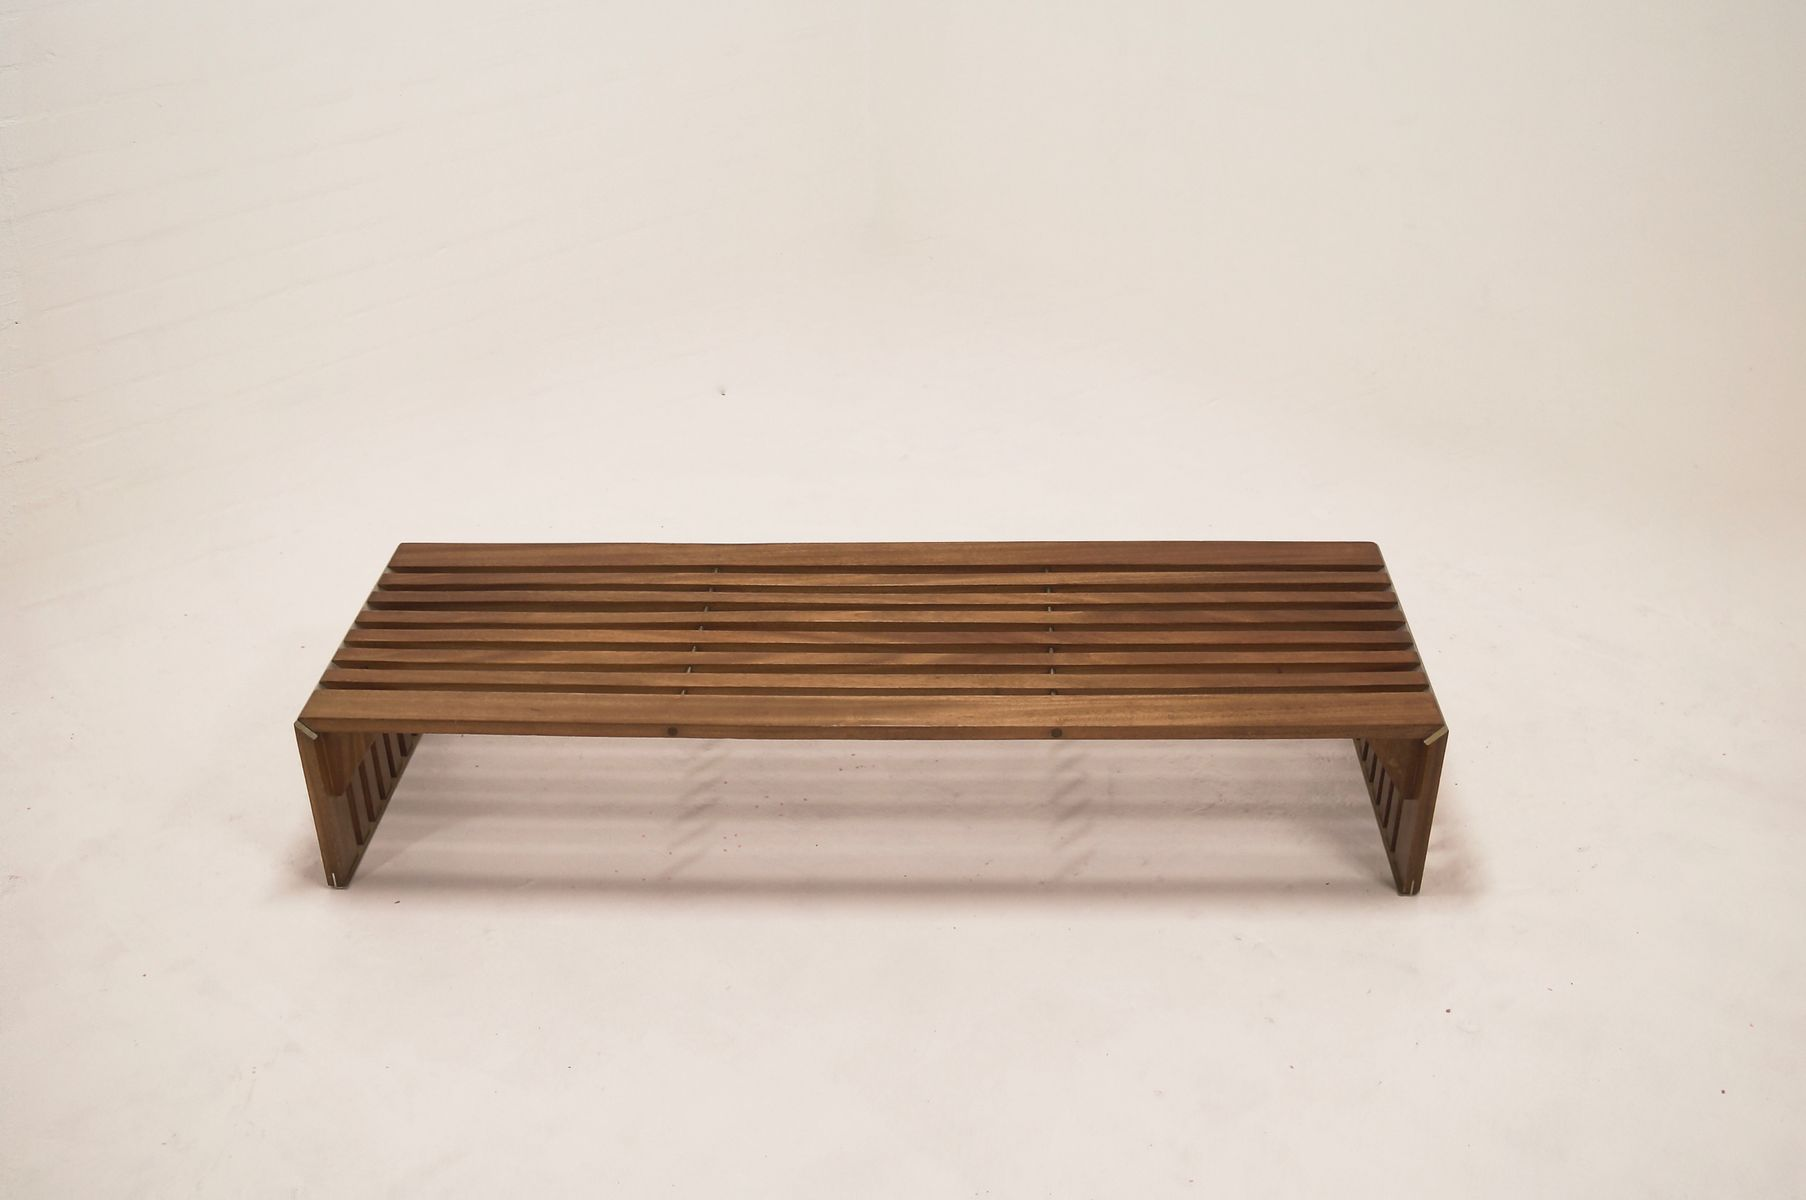 Mid Century Museum Slat Bench By Walter Antonis For T